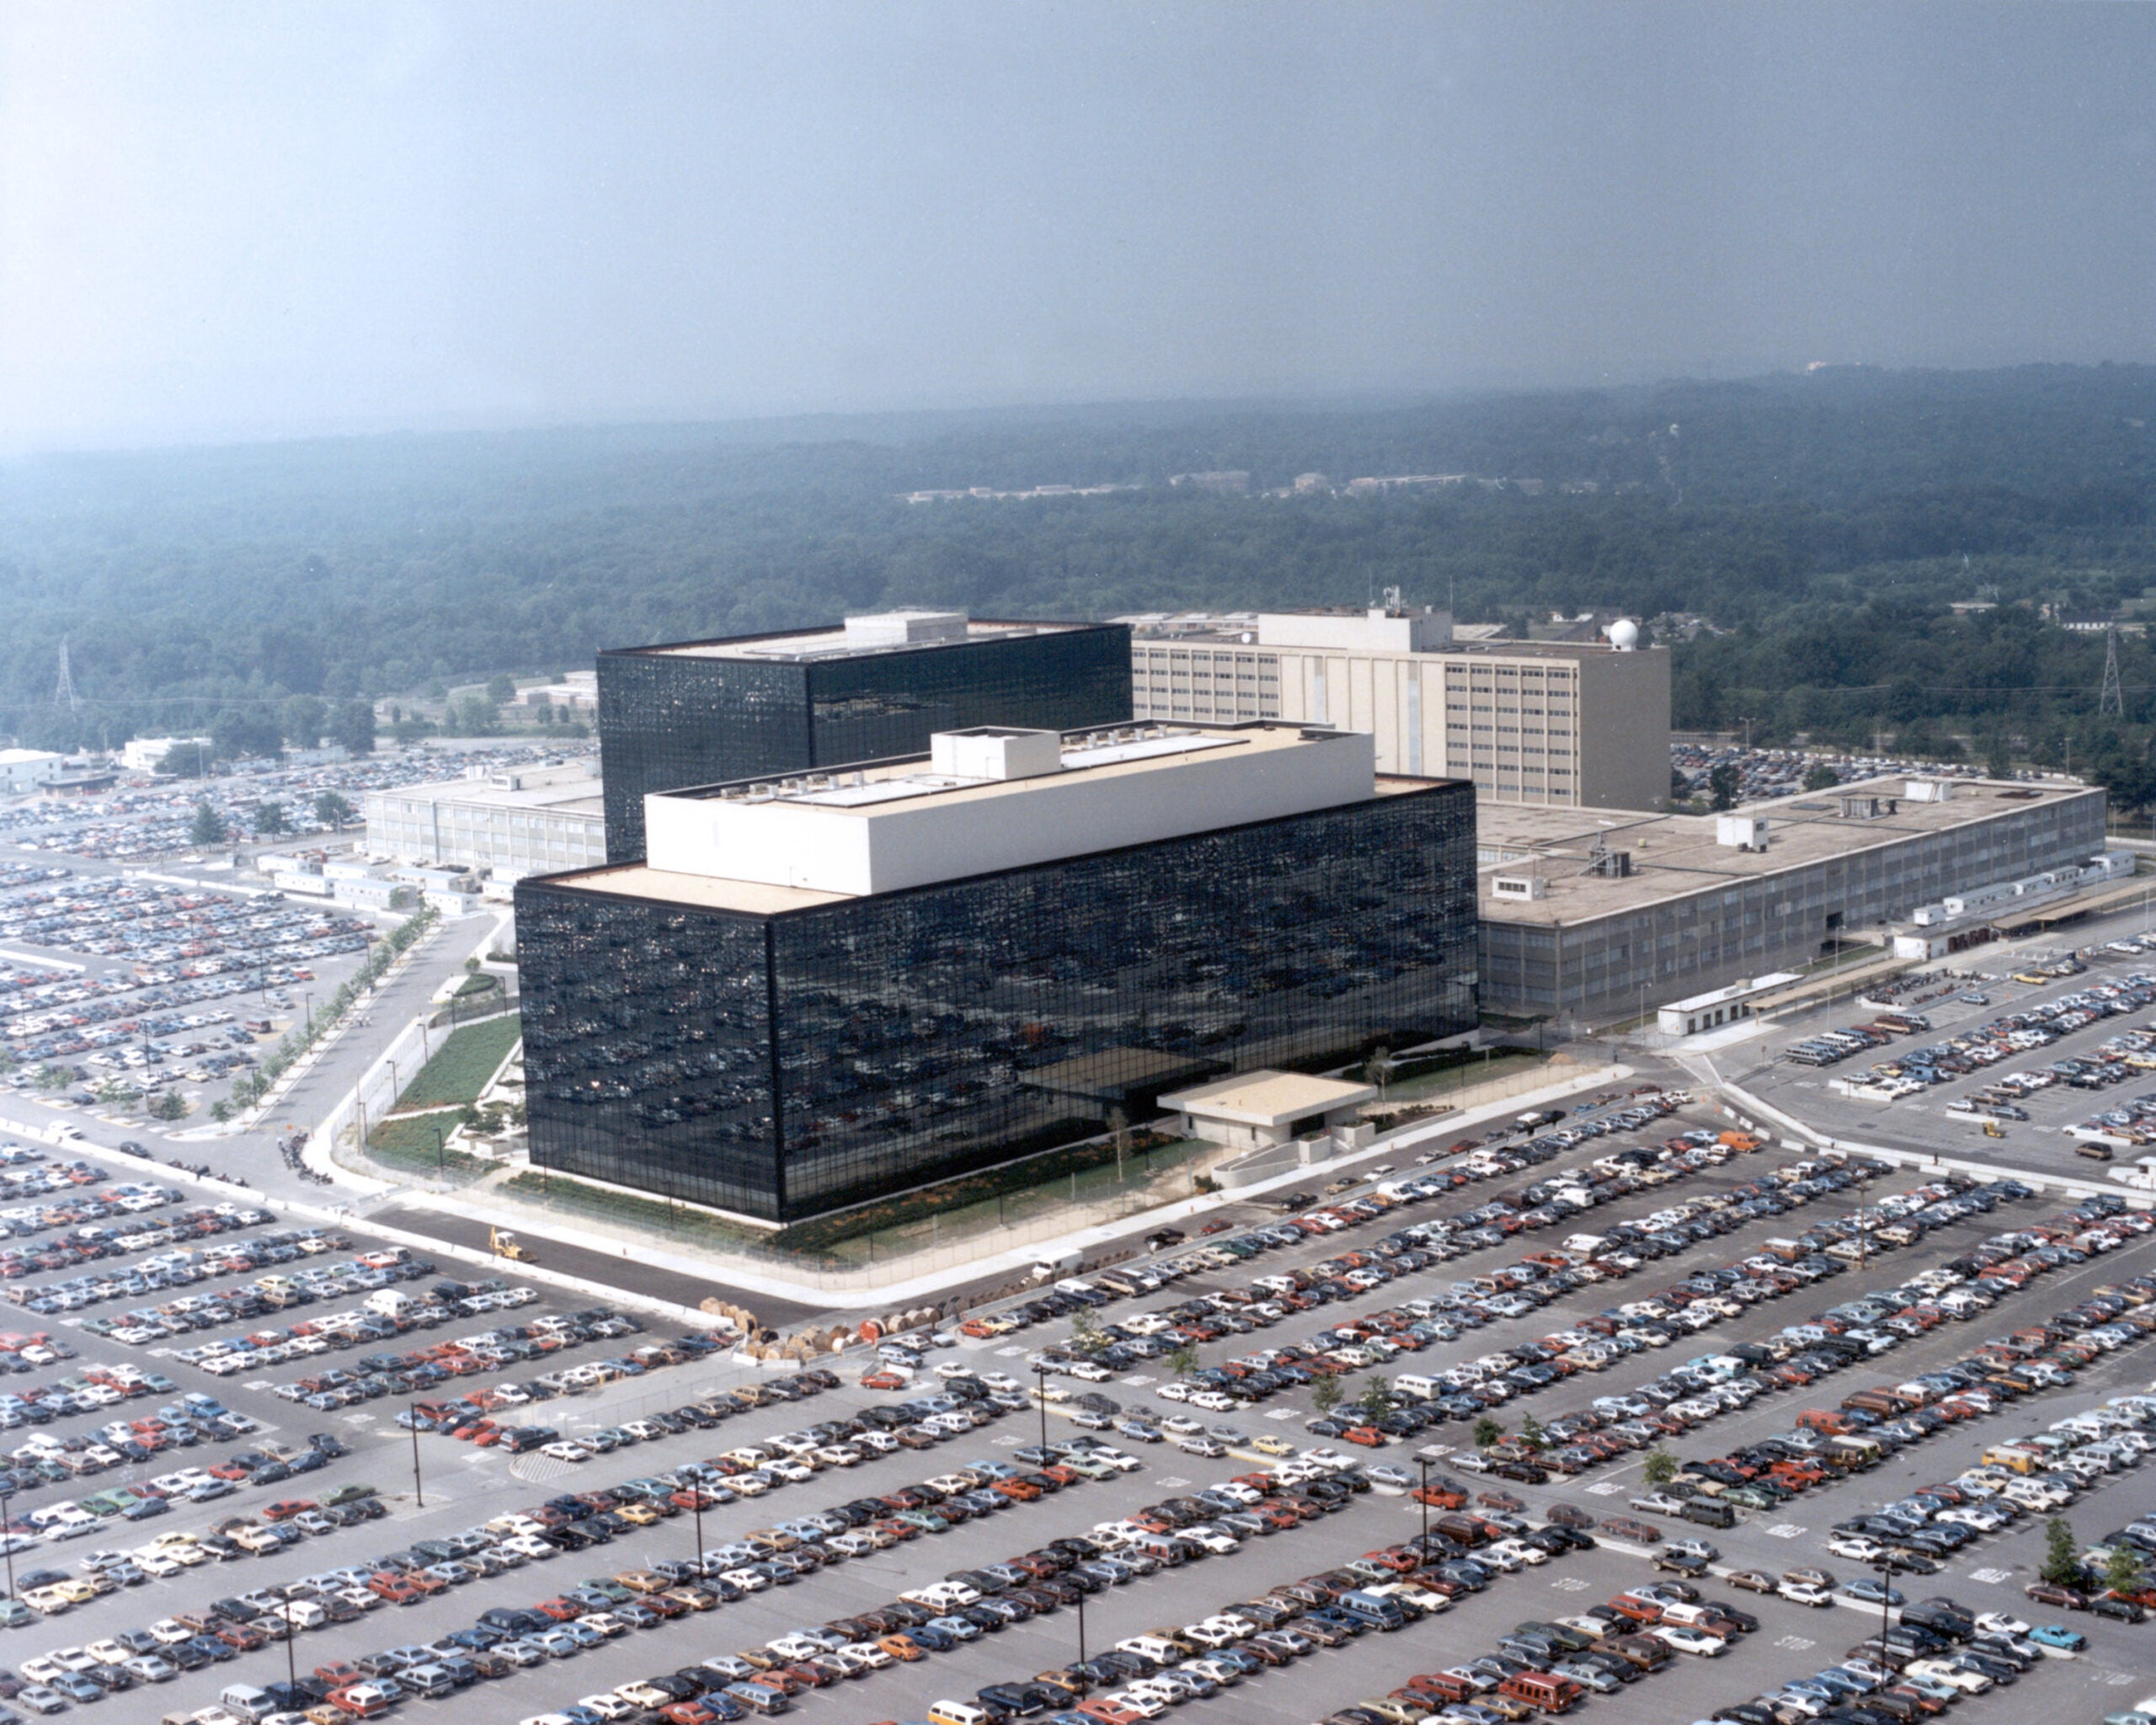 Senate Fails To Curtail NSA Monitoring Of Citizens